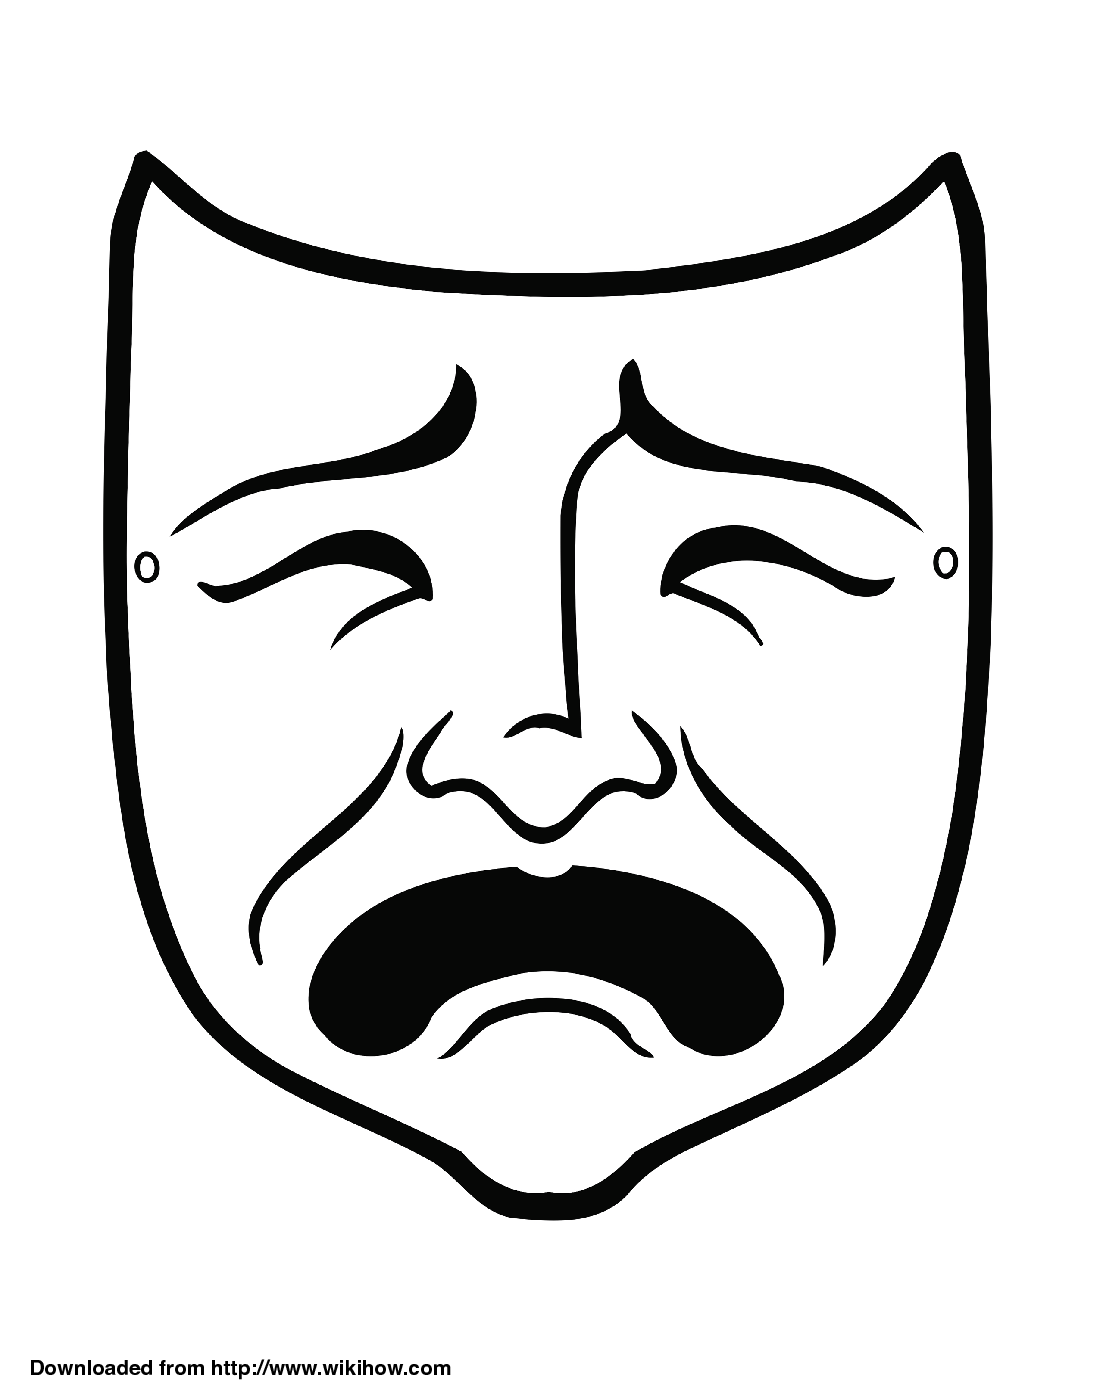 Mask clipart sample. Tragedy wikihow